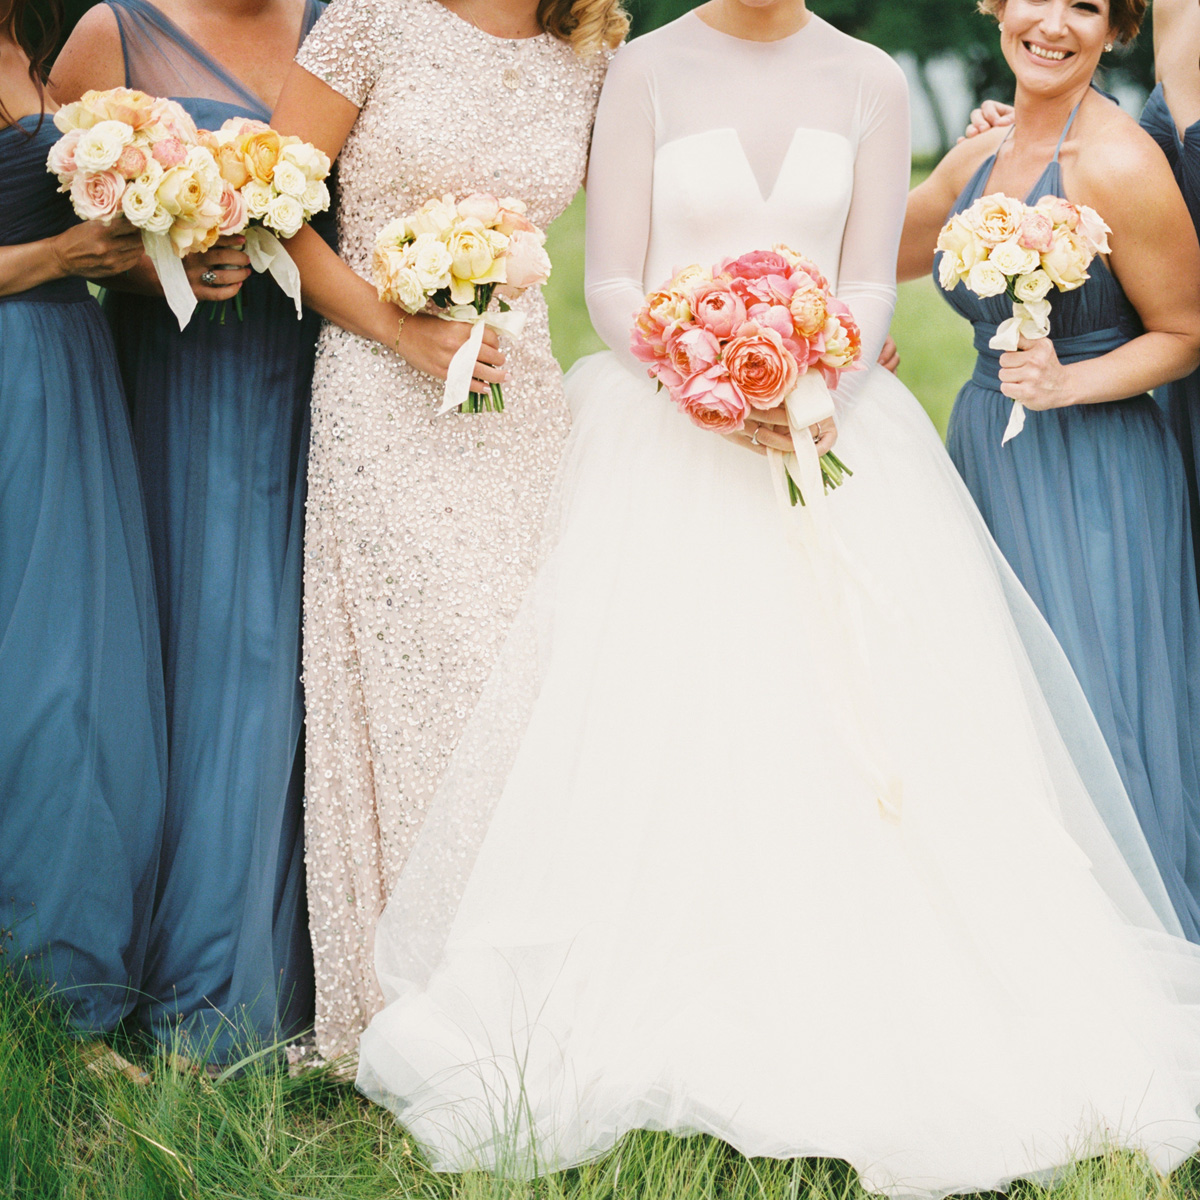 Spring Bridesmaid Bouquets by Sprout Floral Design